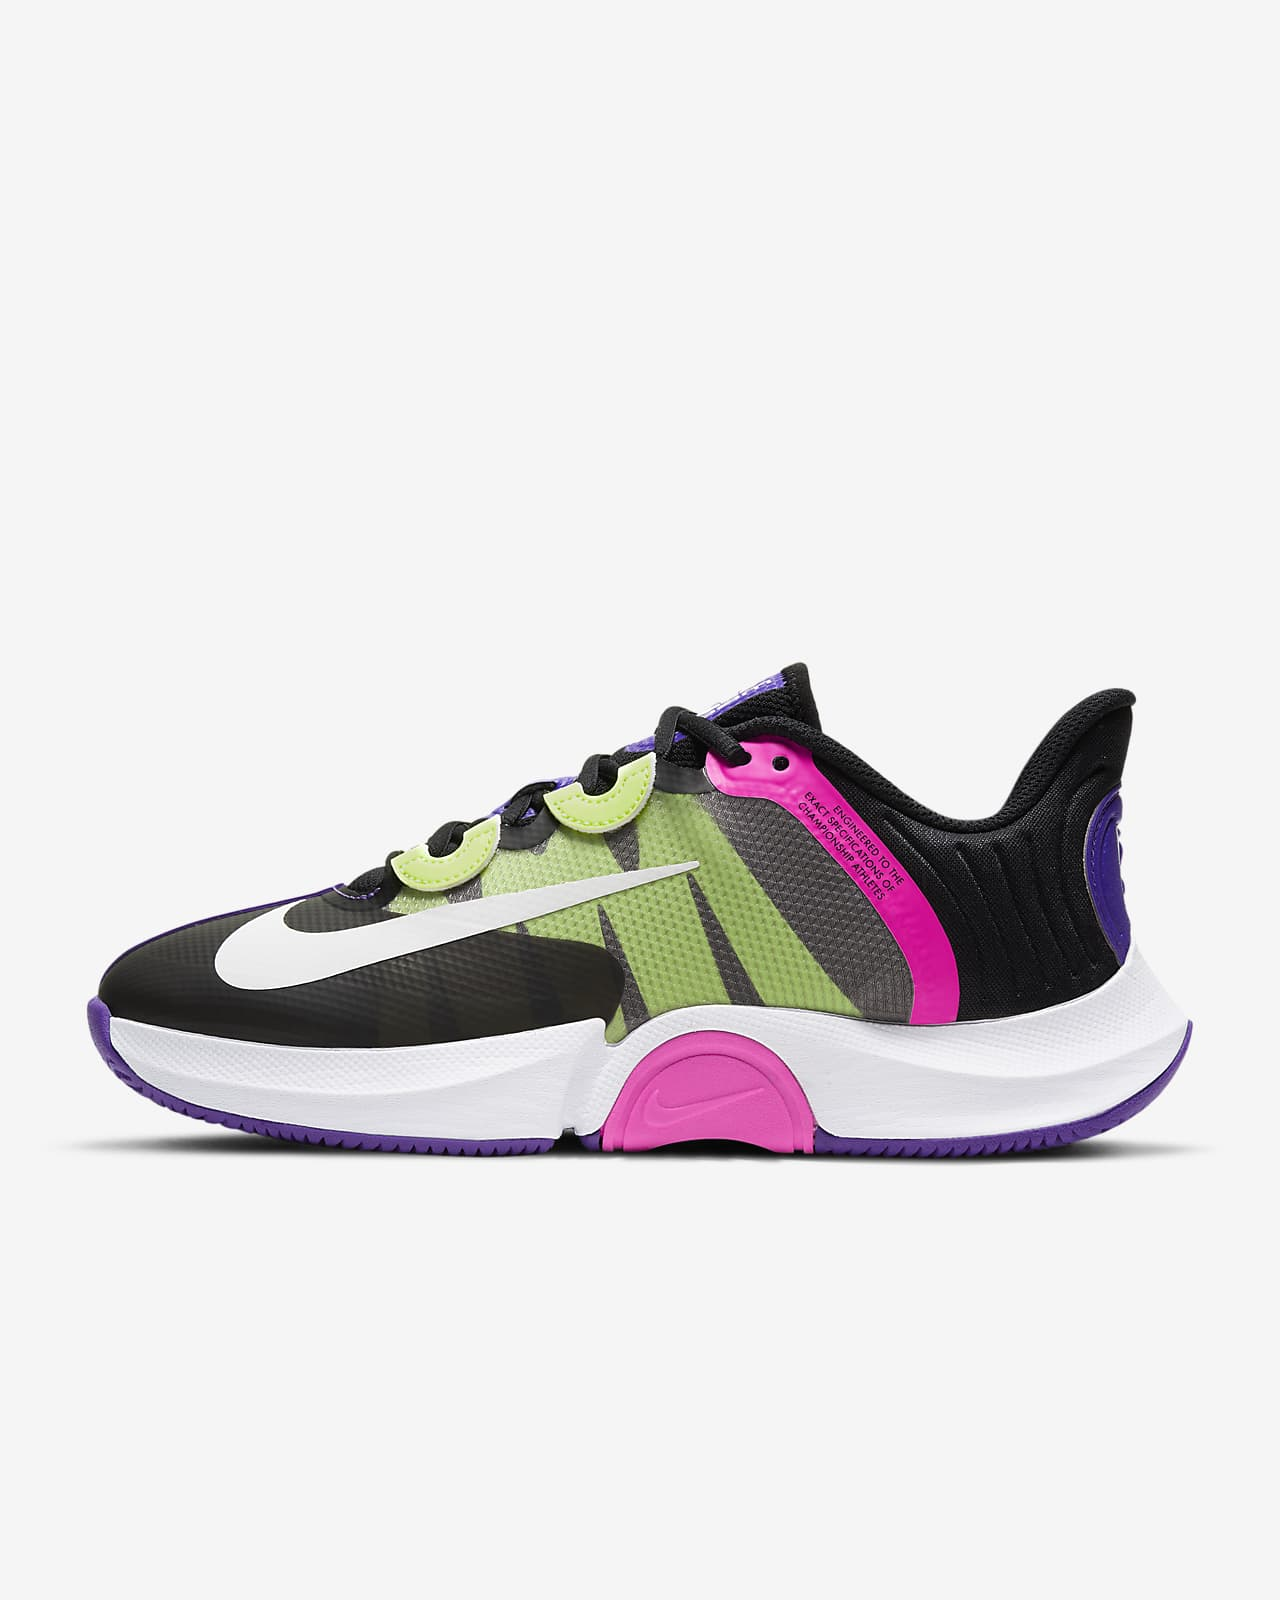 NikeCourt Air Zoom GP Turbo Women's Hard Court Tennis Shoe